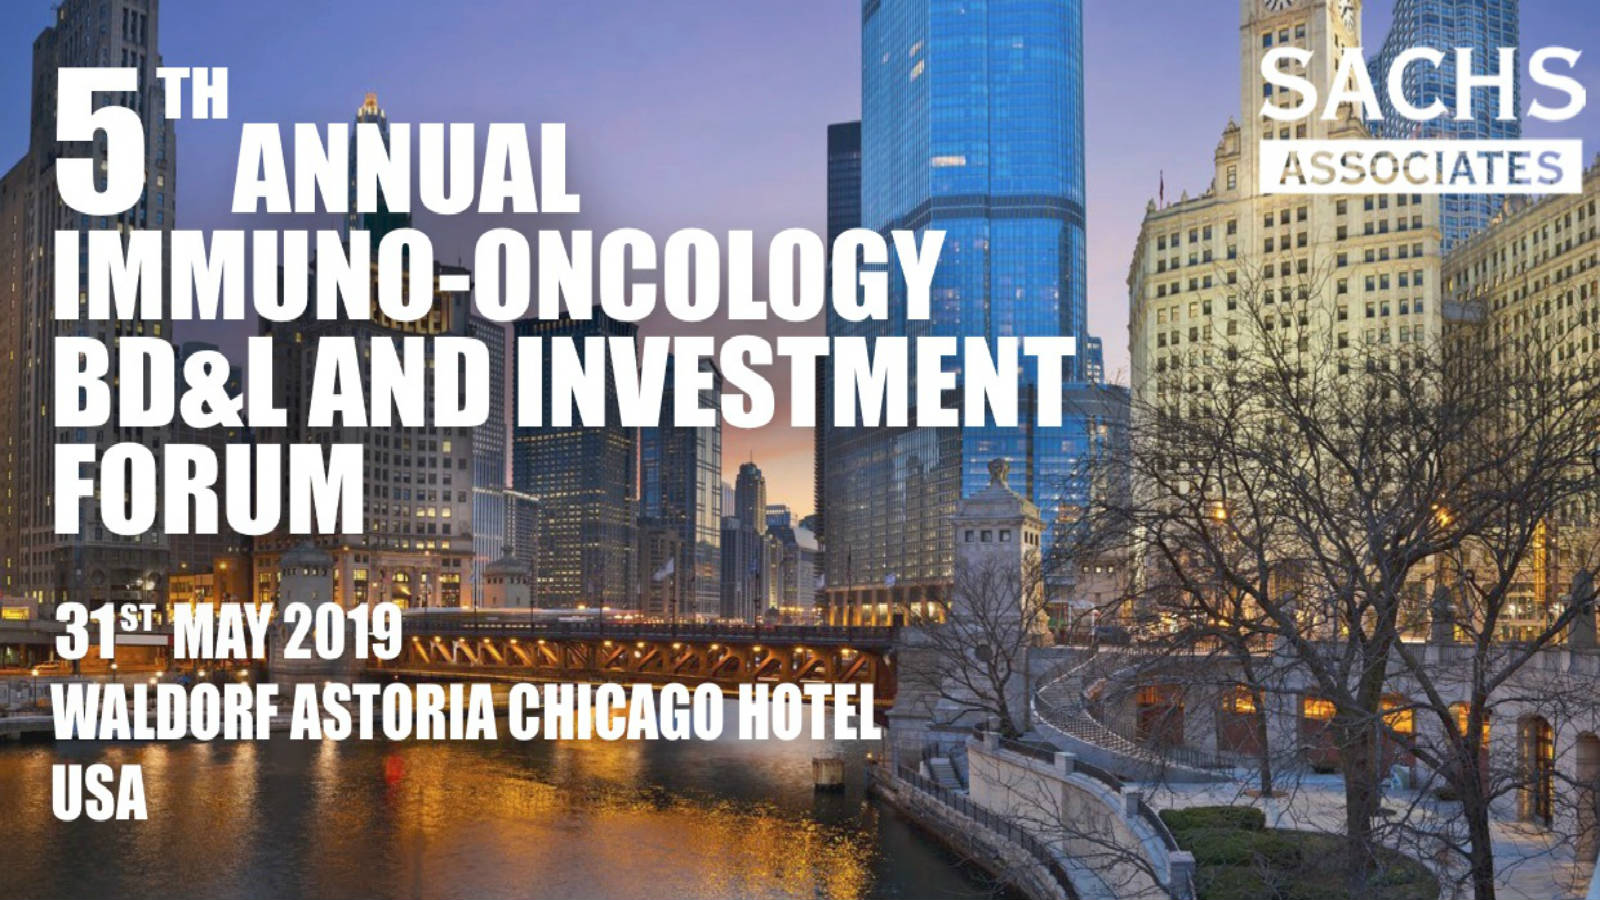 5th Annual Immuno-Oncology BD&L and Investment Forum.jpg